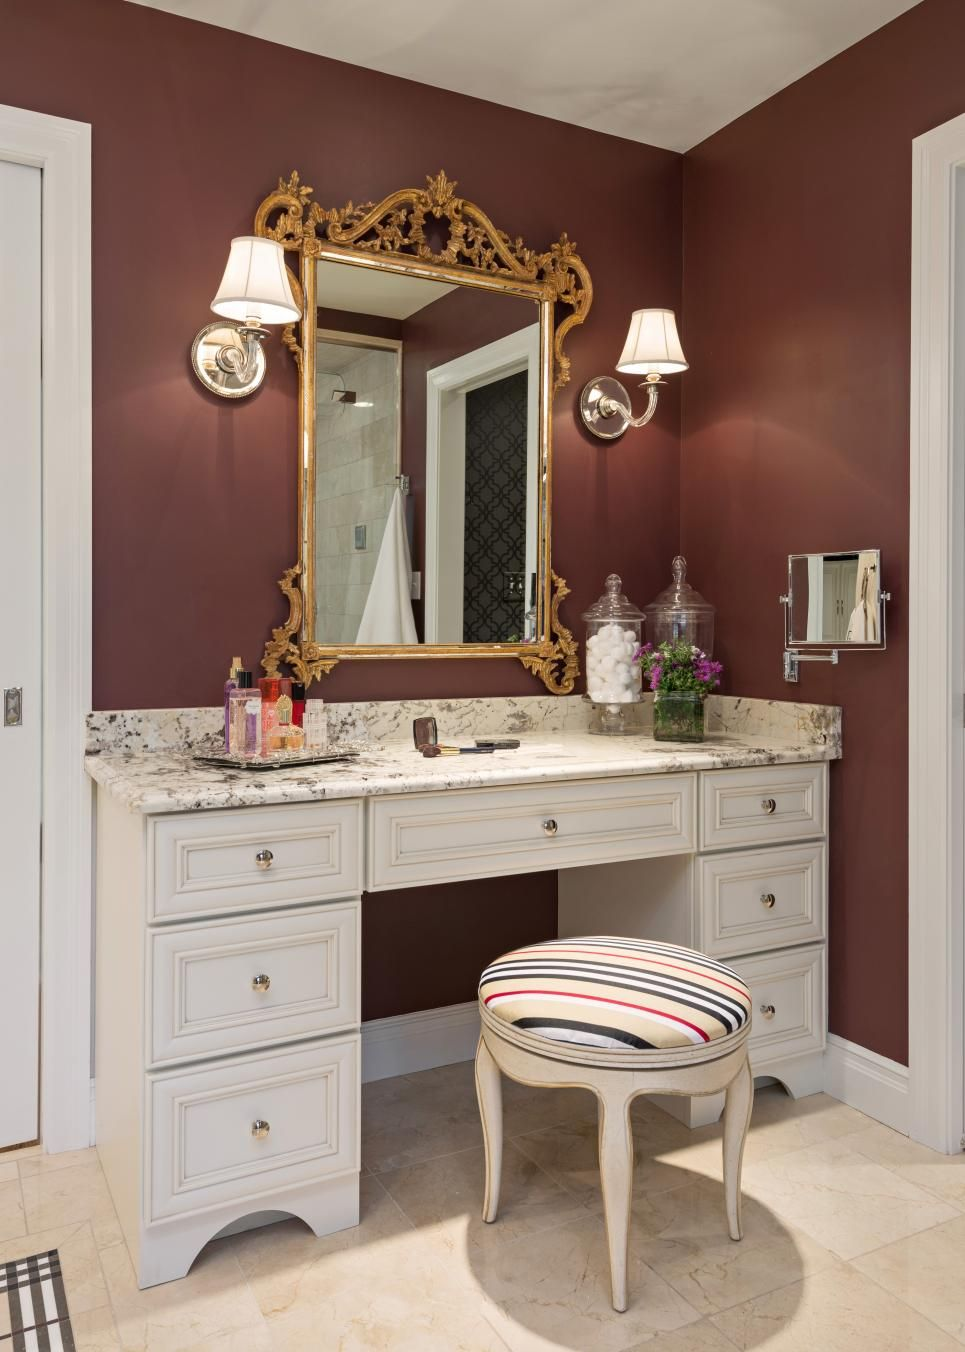 In the corner of this luxe burgundy bathroom, an elegant